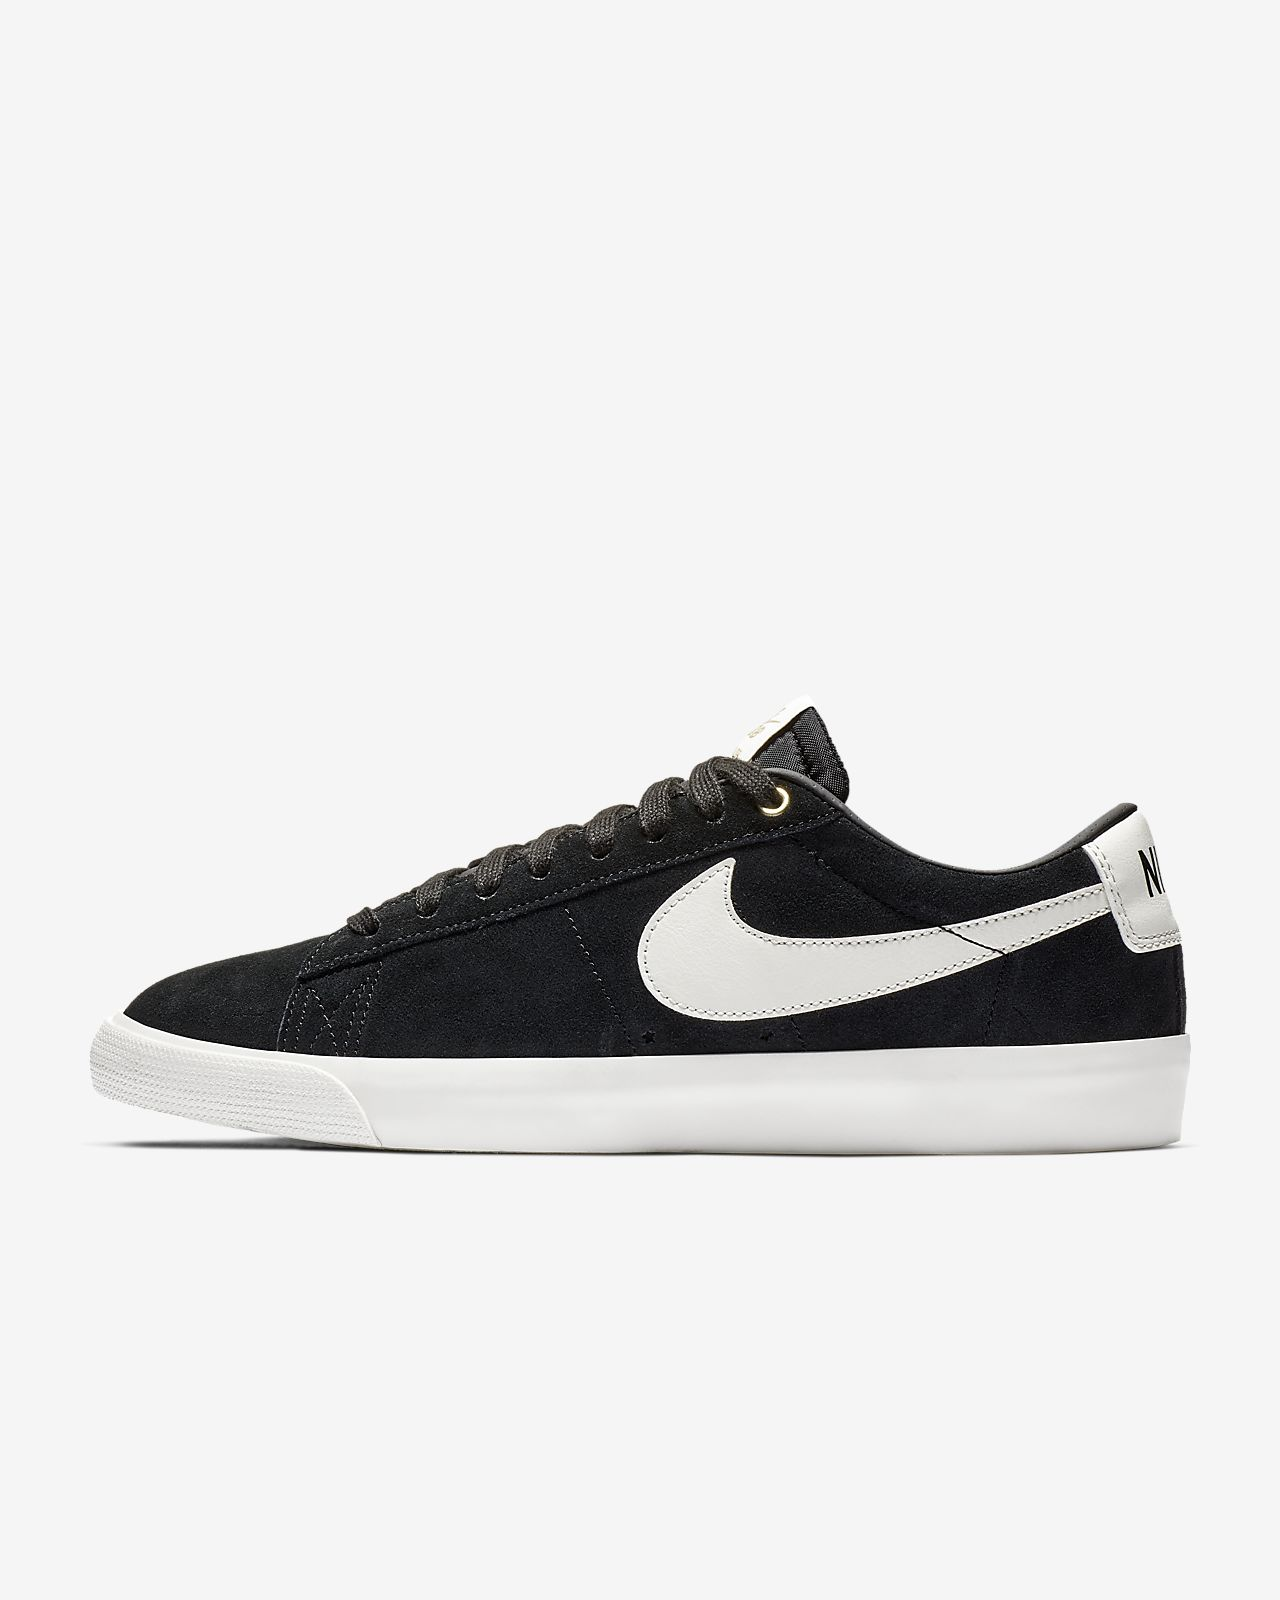 Nike SB Zoom Blazer Low GT 男子滑板鞋